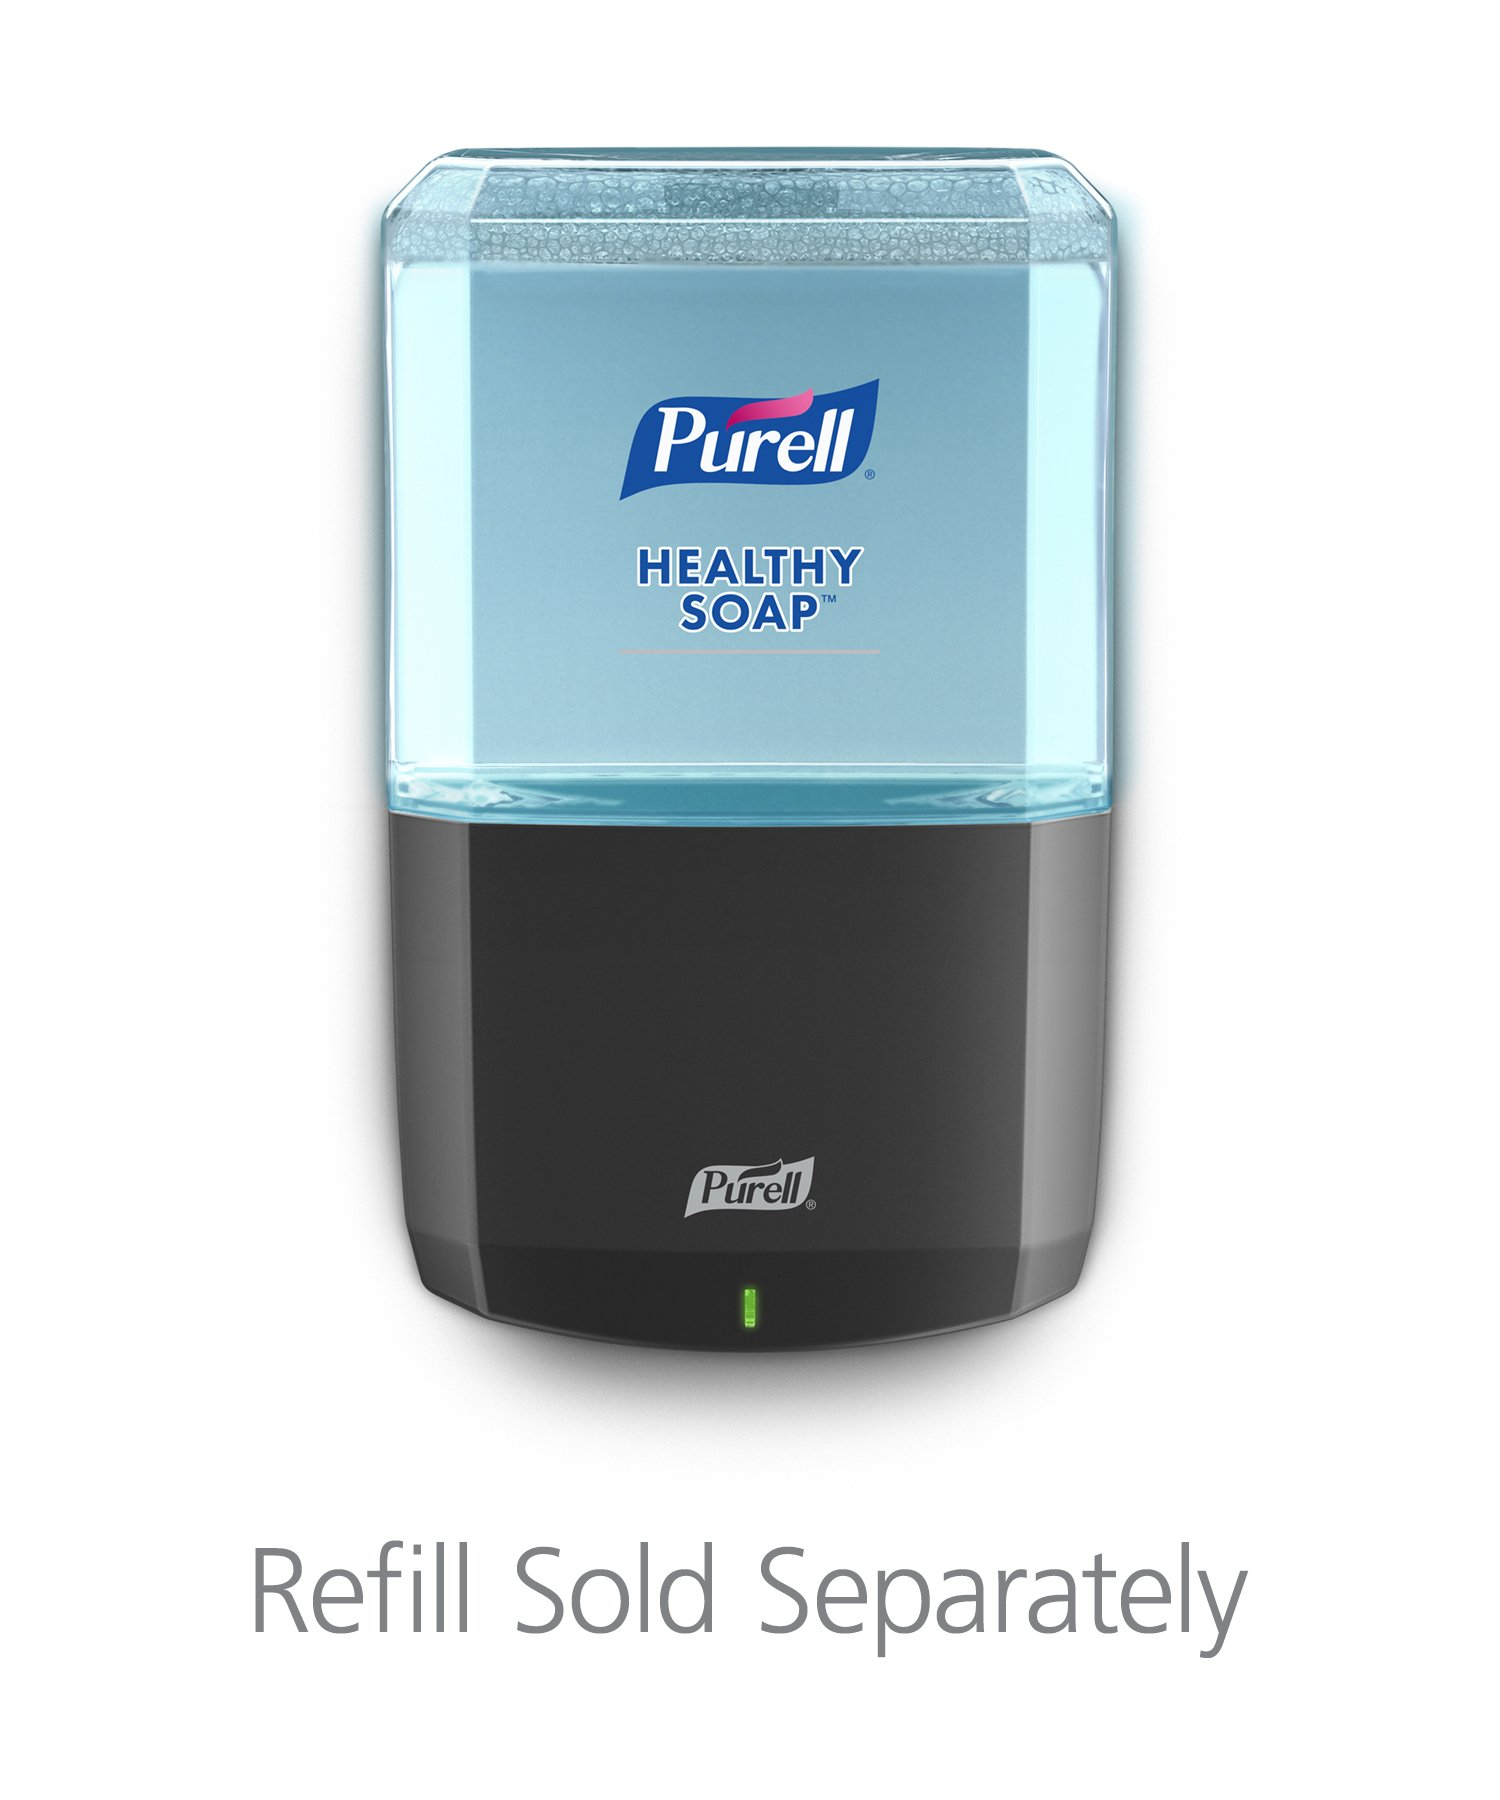 PURELL ES8 Touch-Free Soap Dispenser, Graphite, for 1200 mL PURELL ES8 Healthy SOAP Refills (Pack of 1) - 7734-01 by Purell